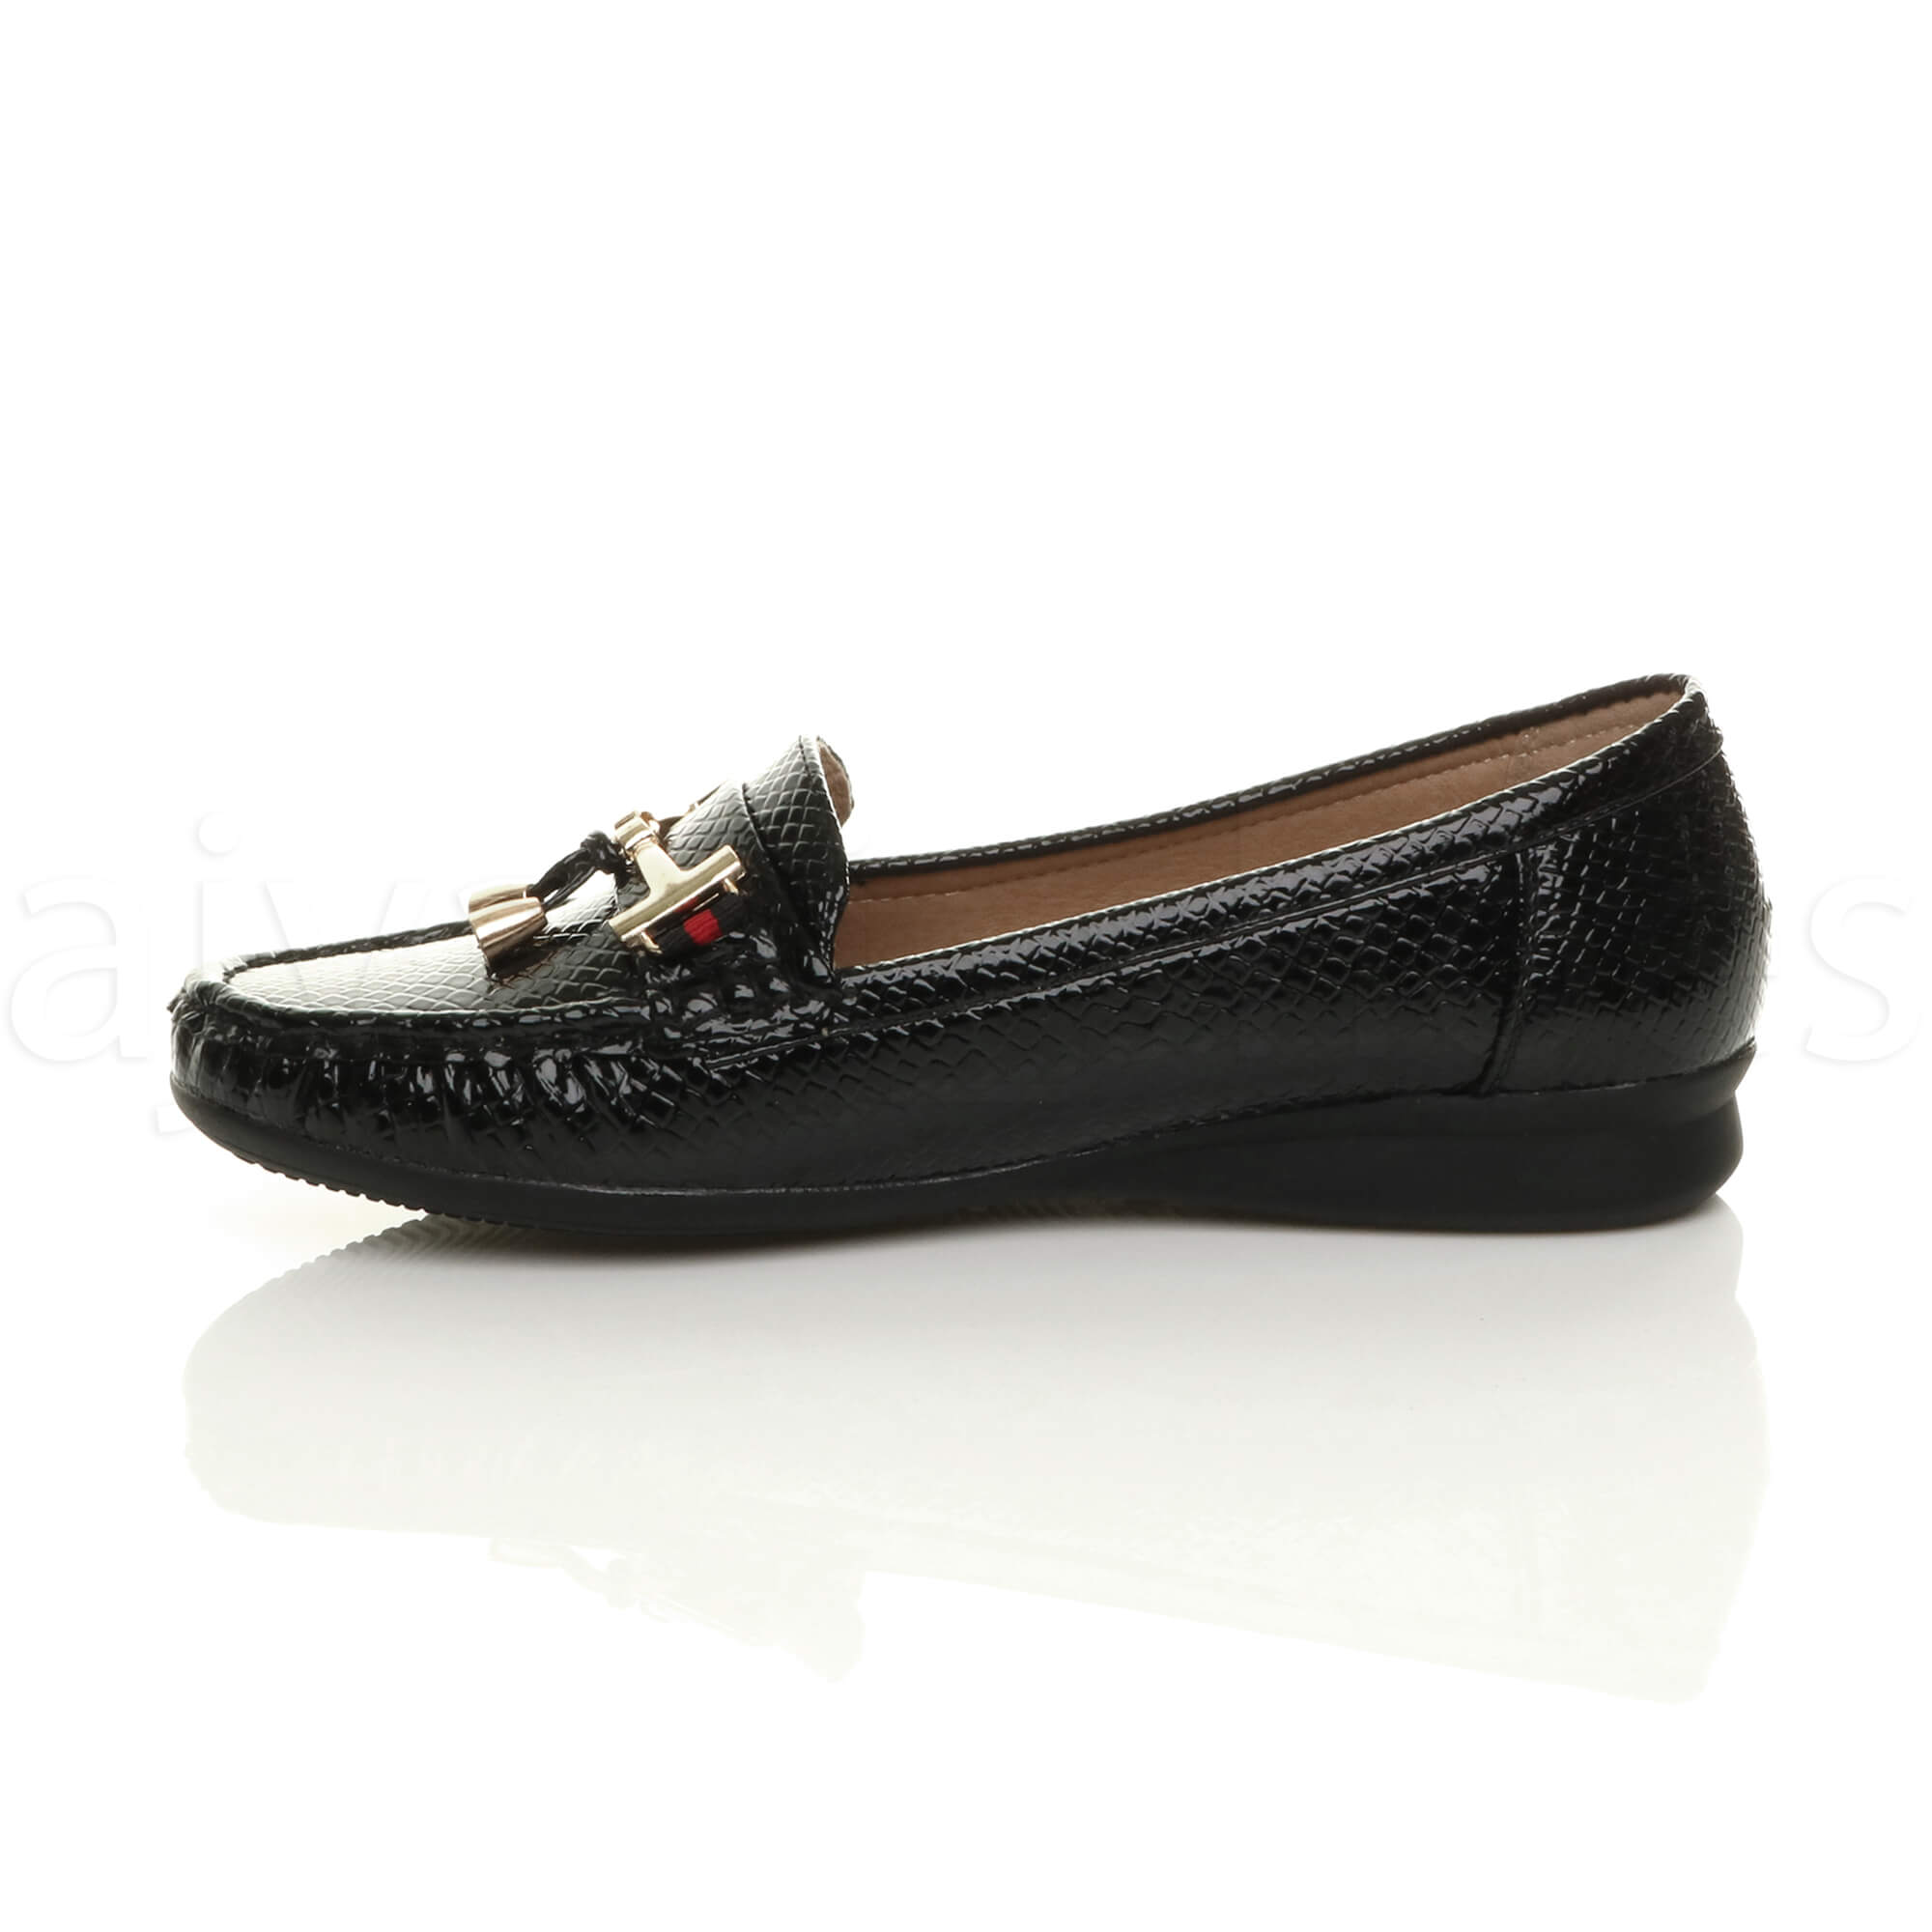 WOMENS-LADIES-LOW-HEEL-WEDGE-LEATHER-TASSEL-LOAFERS-COMFORT-MOCCASINS-SHOES-SIZE thumbnail 20